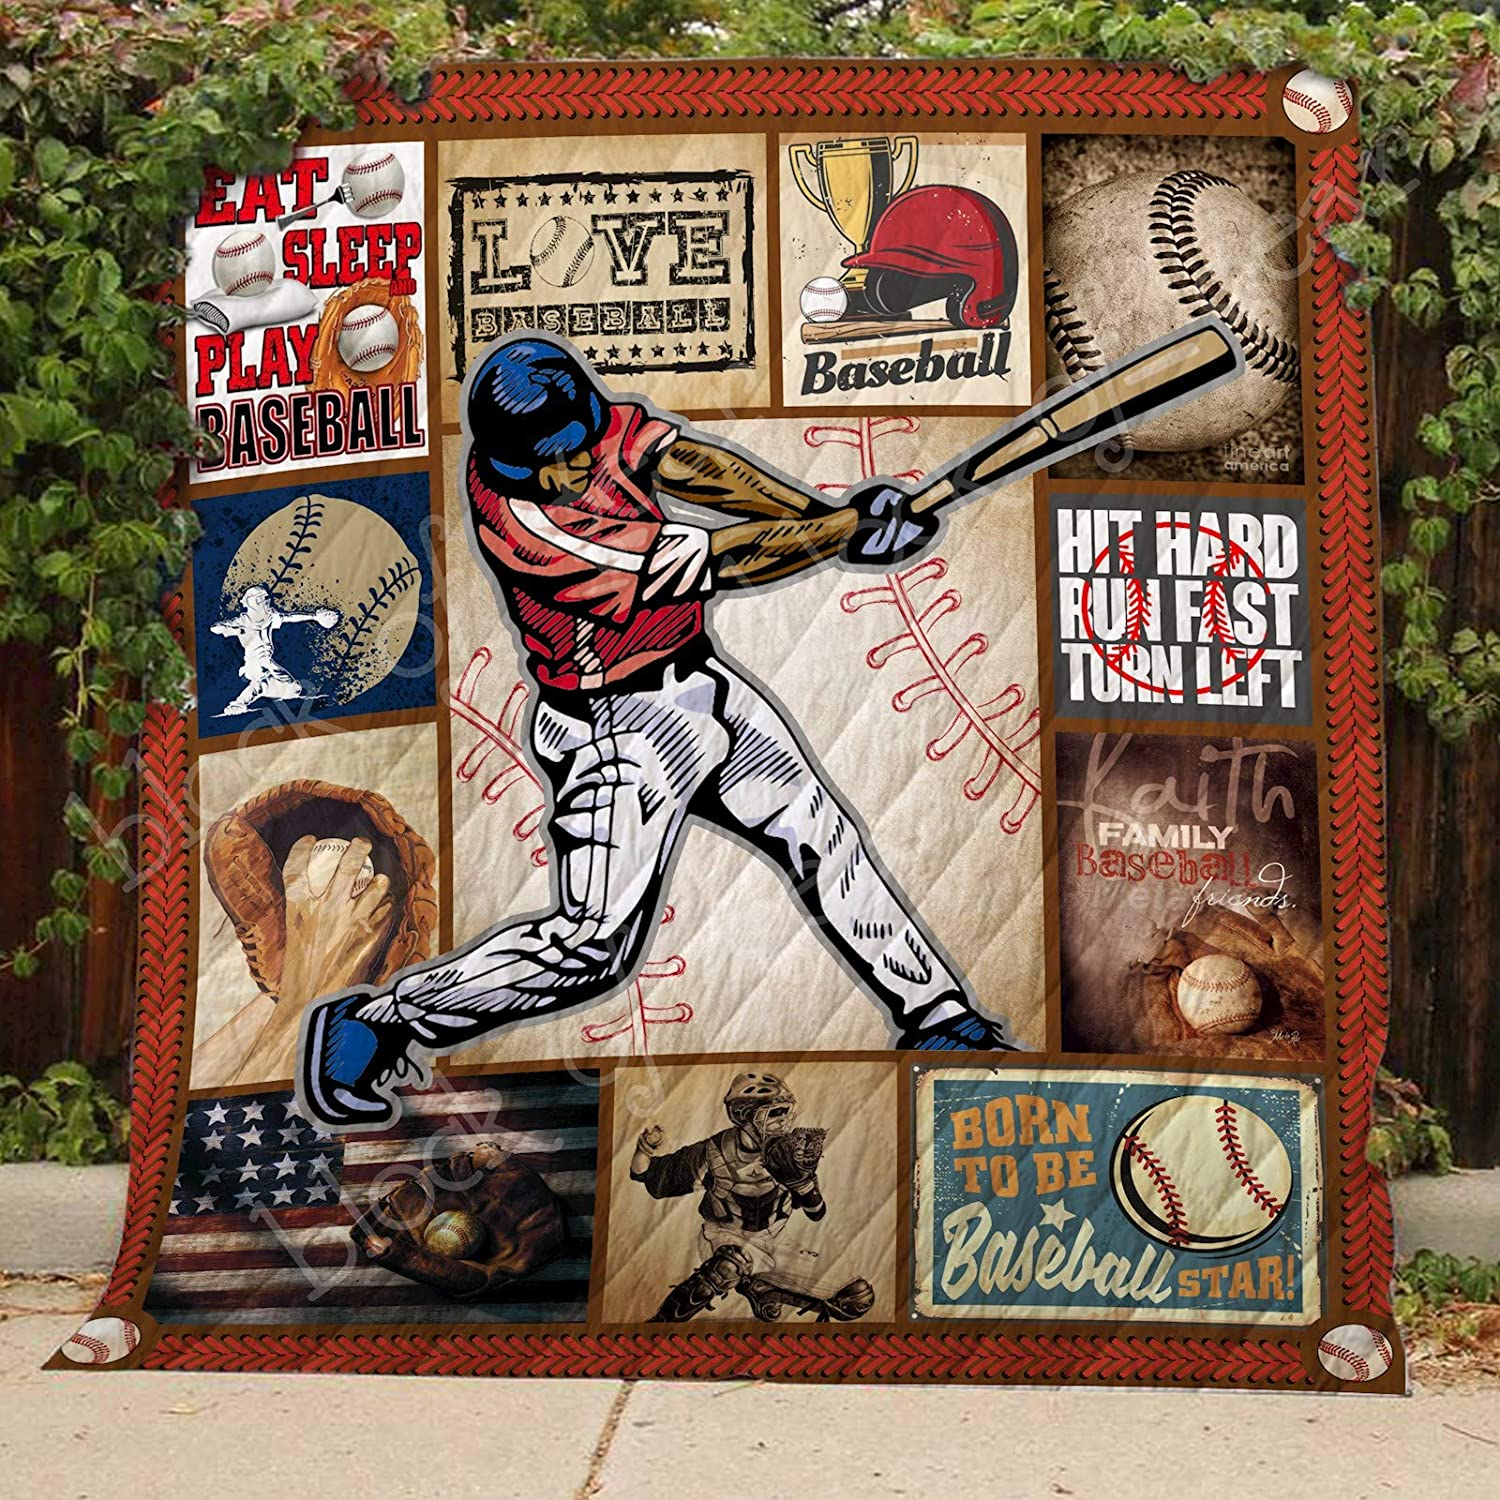 Born to be Baseball Star Quilt TH568, Queen All-Season Quilts Comforters with Reversible Cotton King Queen Twin Size - Best Decorative Quilts-Unique Quilted for Gifts